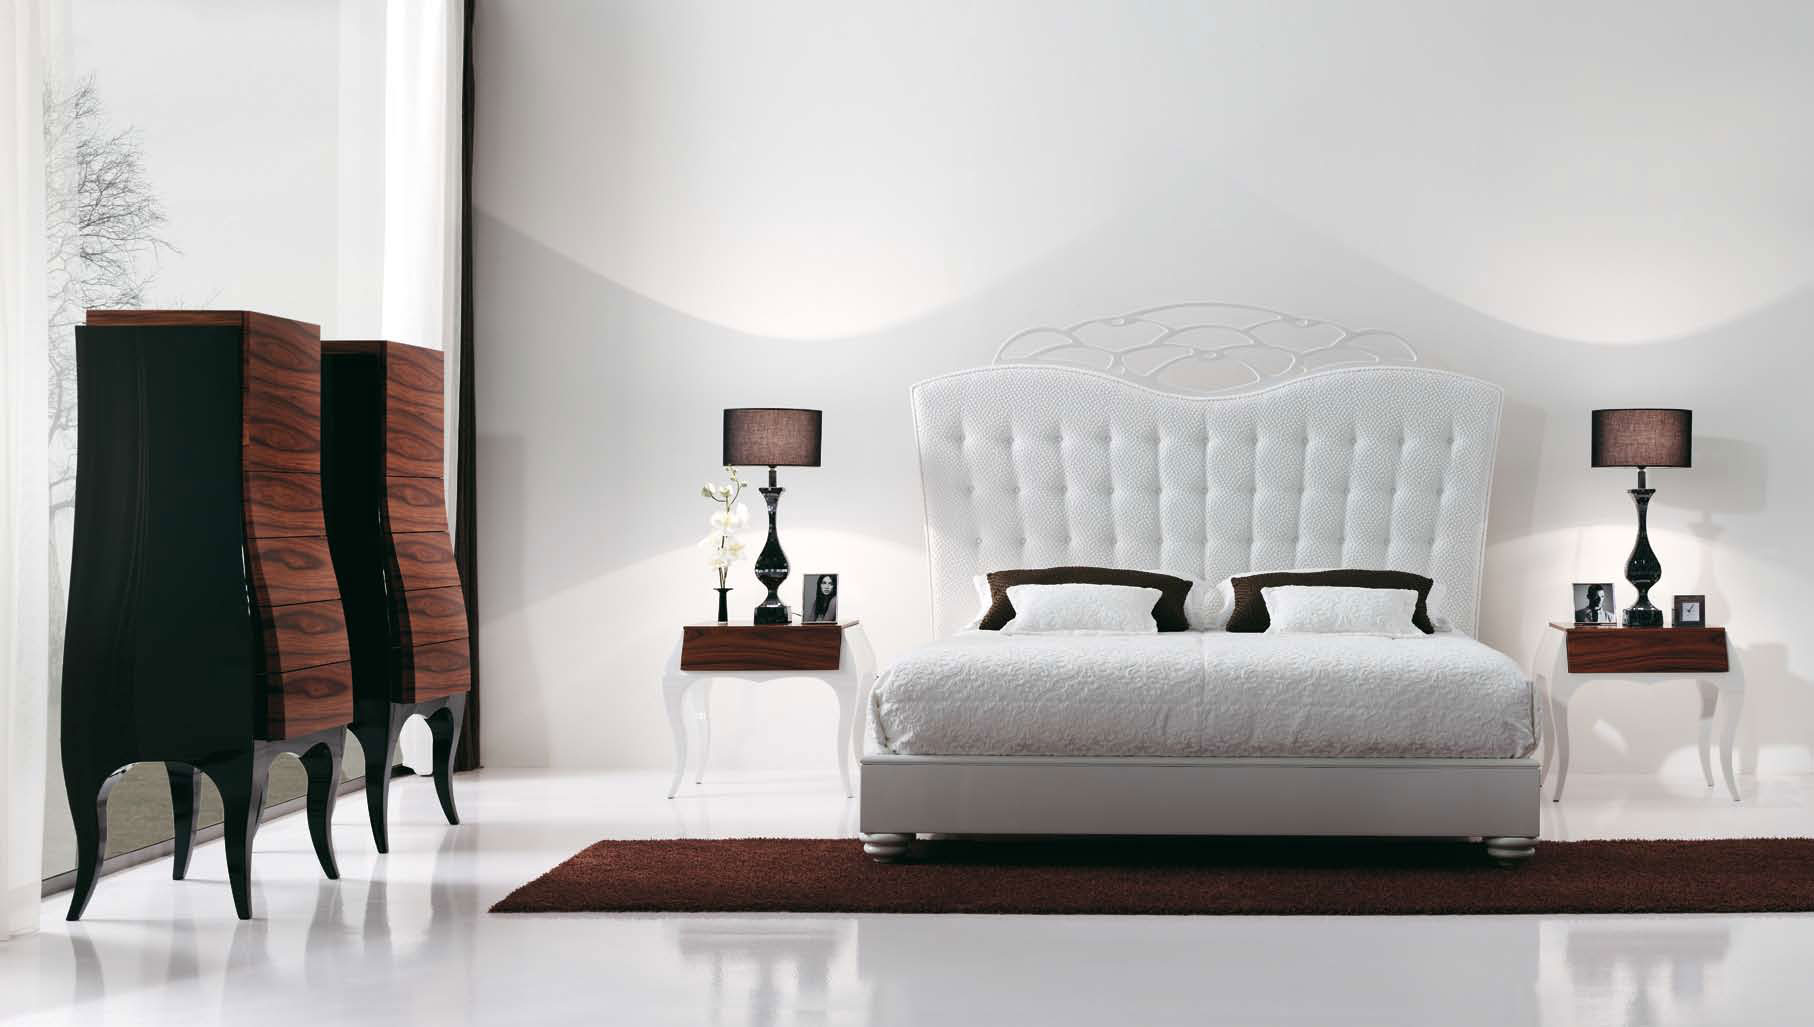 Stunning Beautiful White Bedroom Designs 1814 x 1027 · 118 kB · jpeg